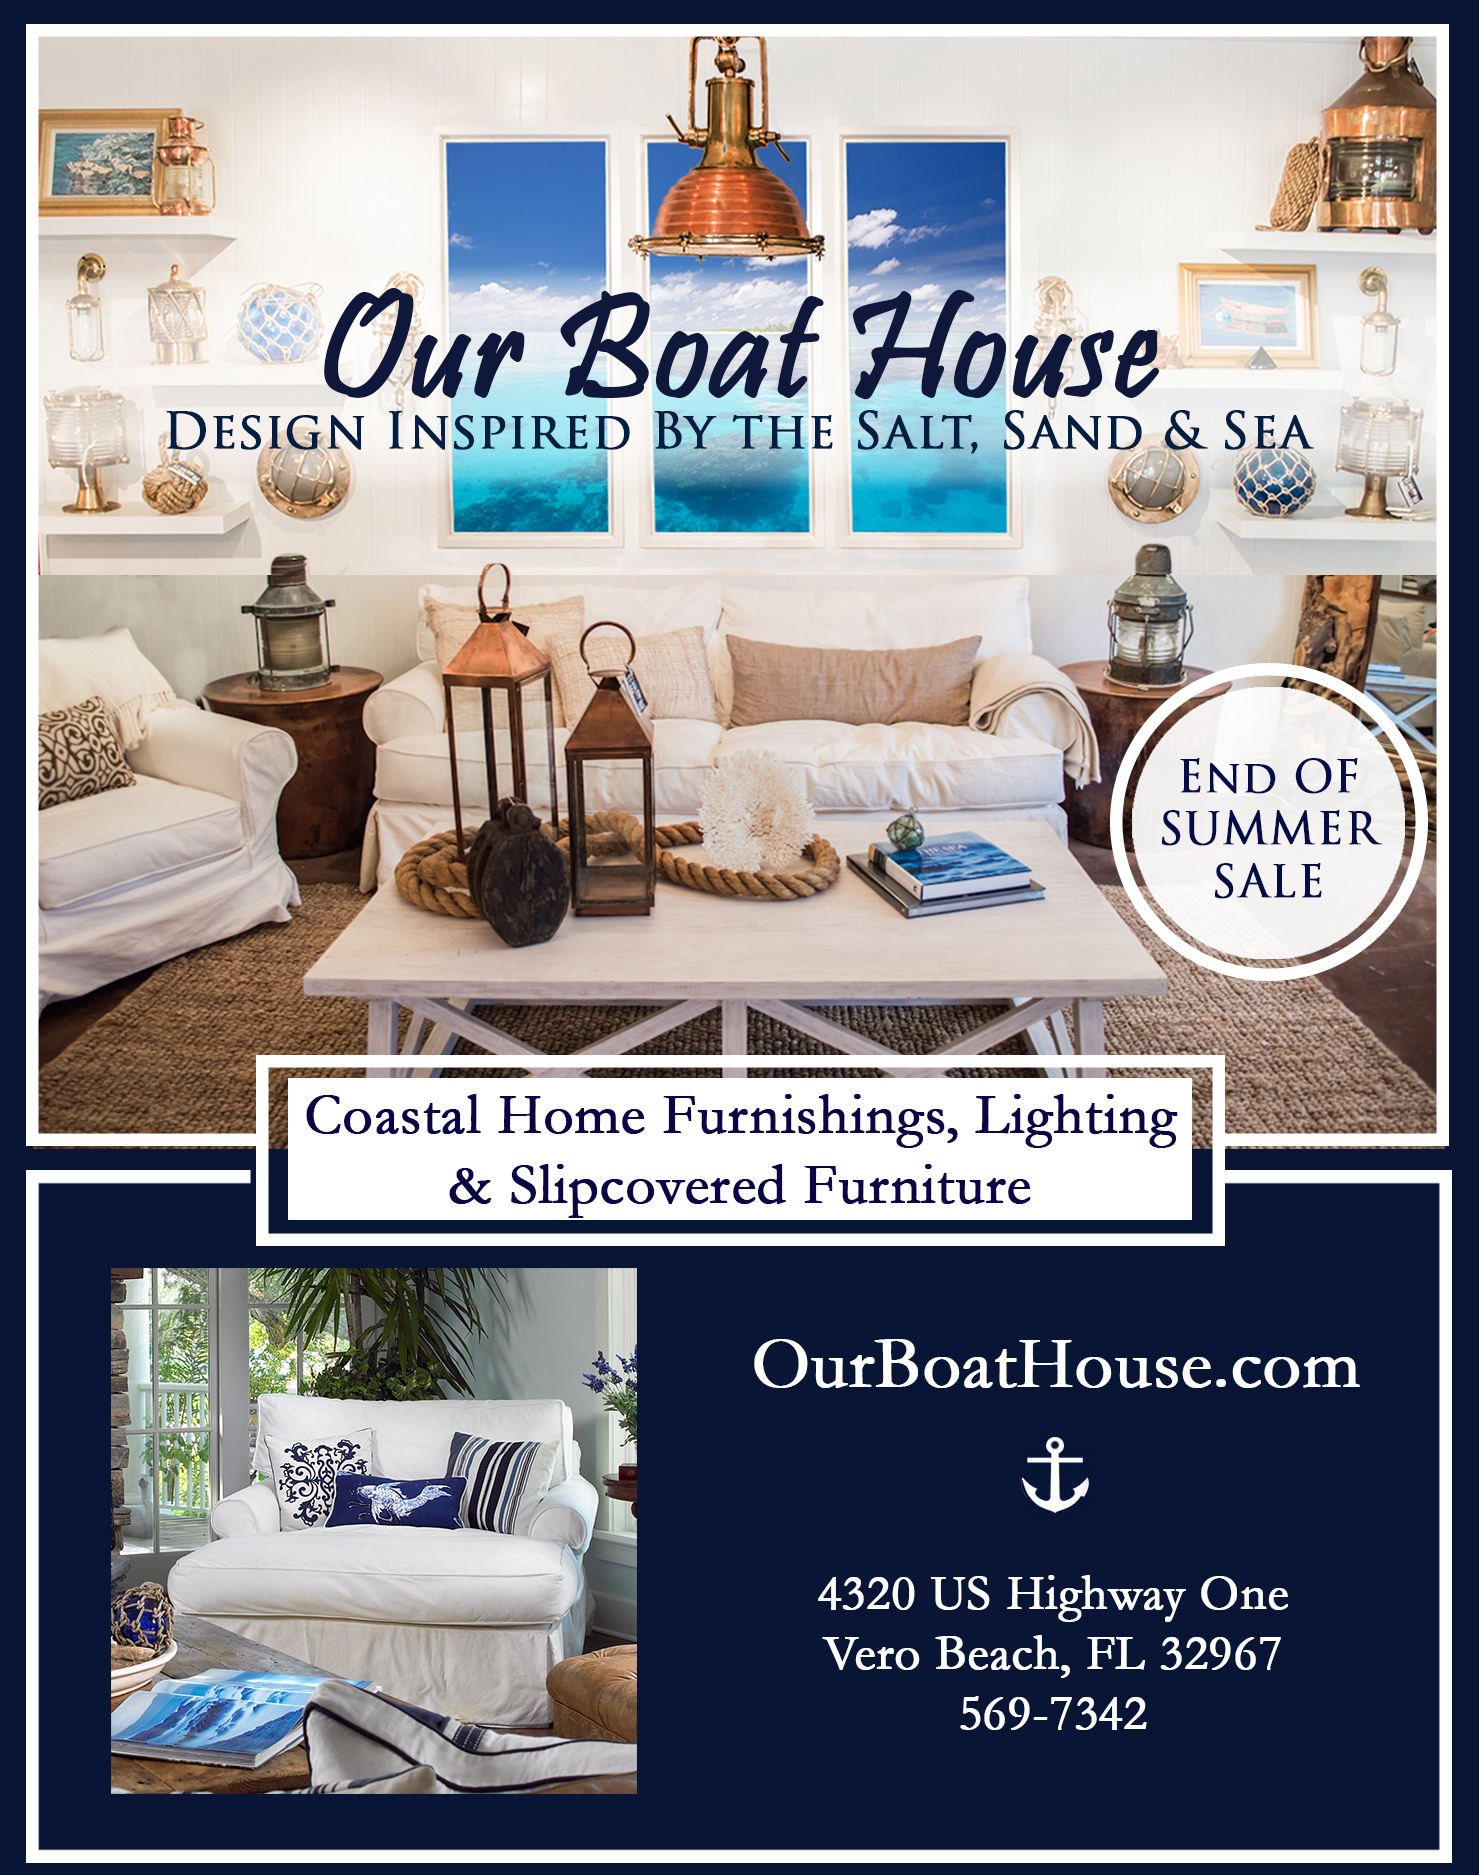 Our Boat House - ad image